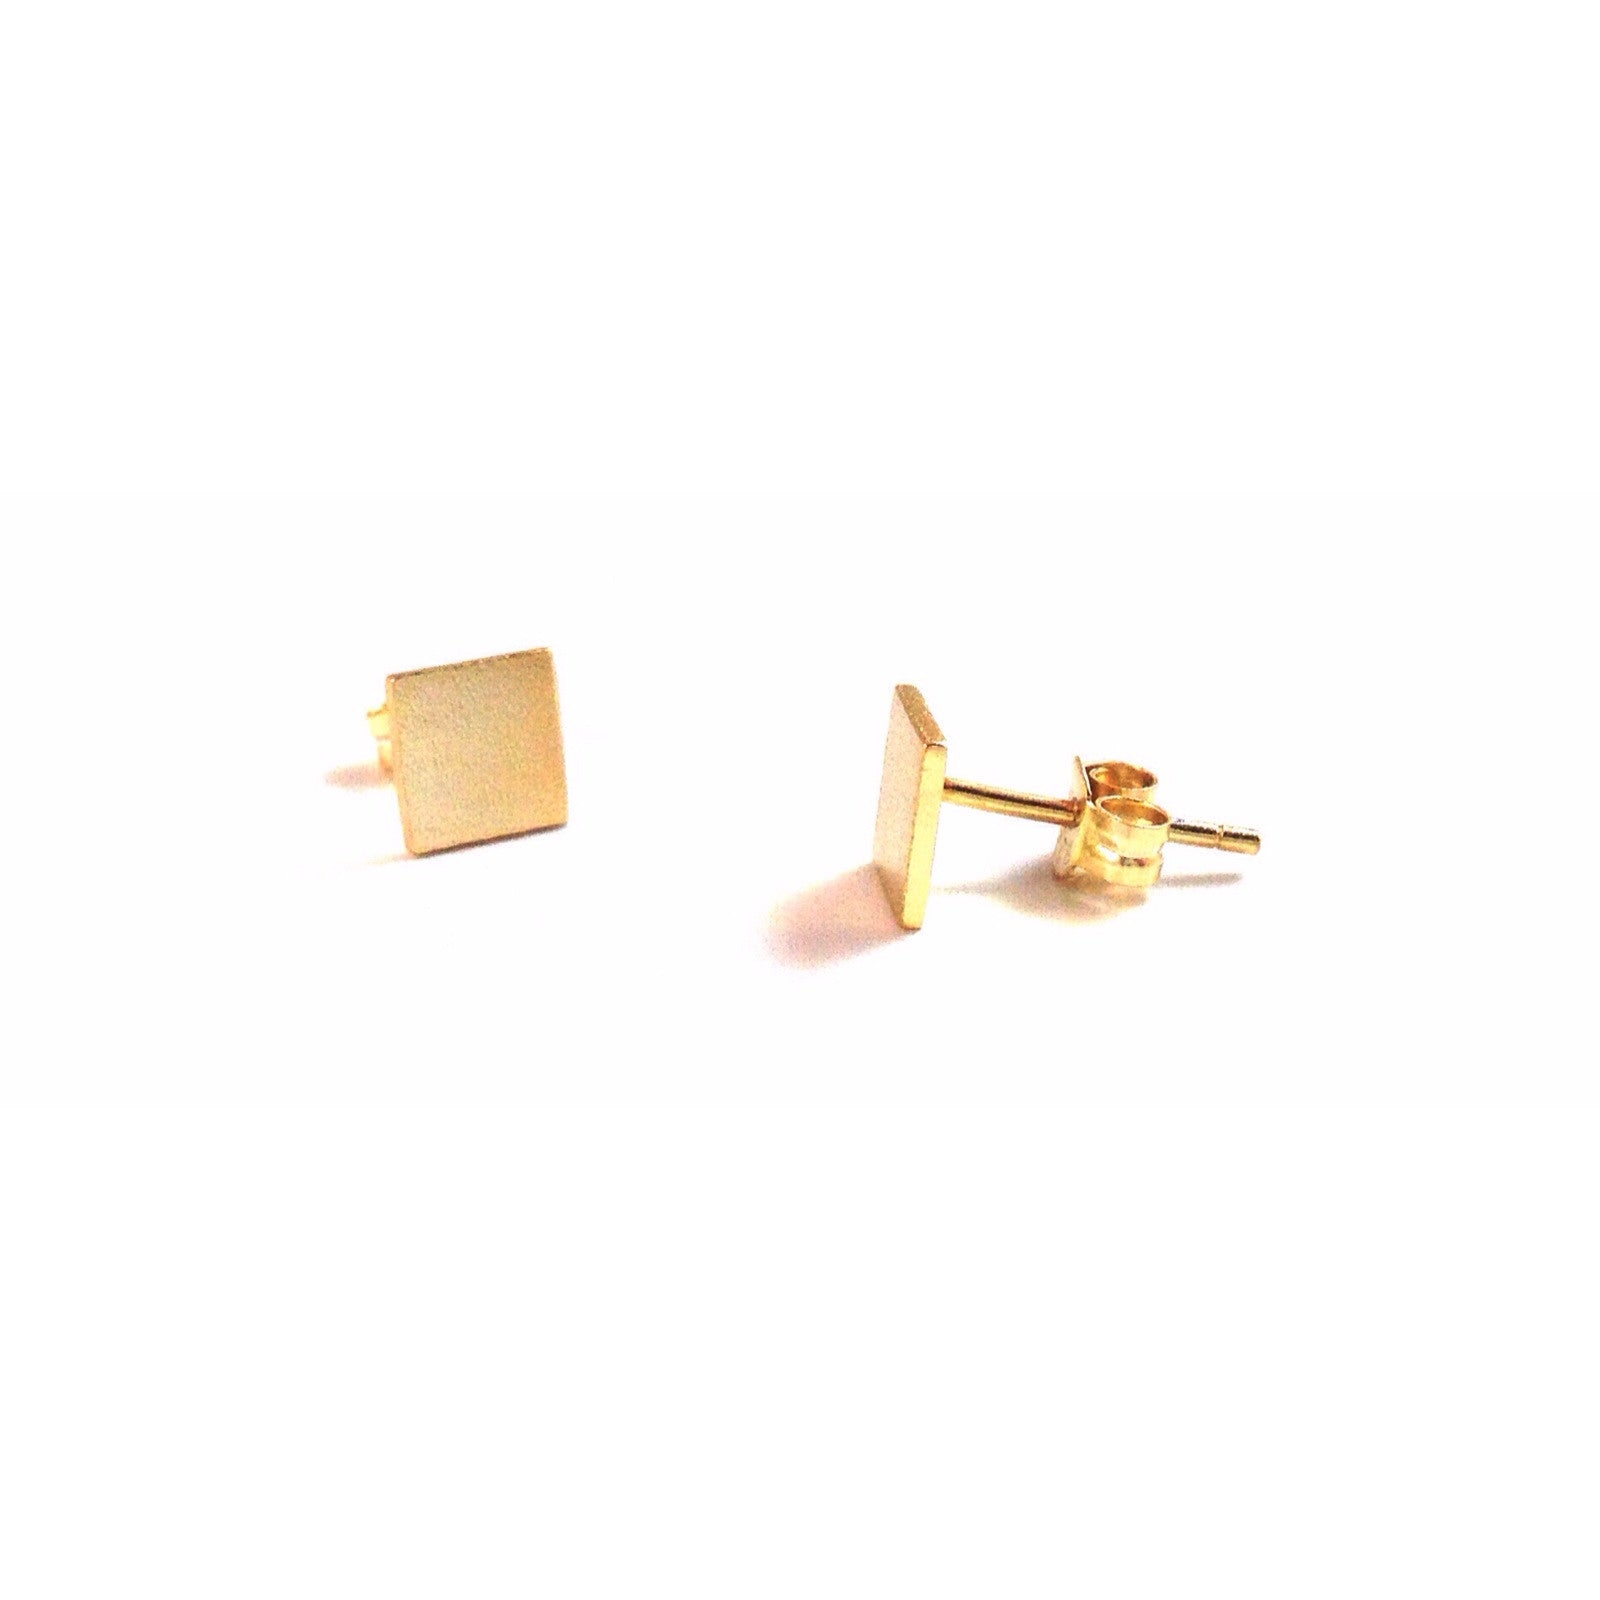 Modern Square Posts, $11 | Gold | Light Years Jewelry